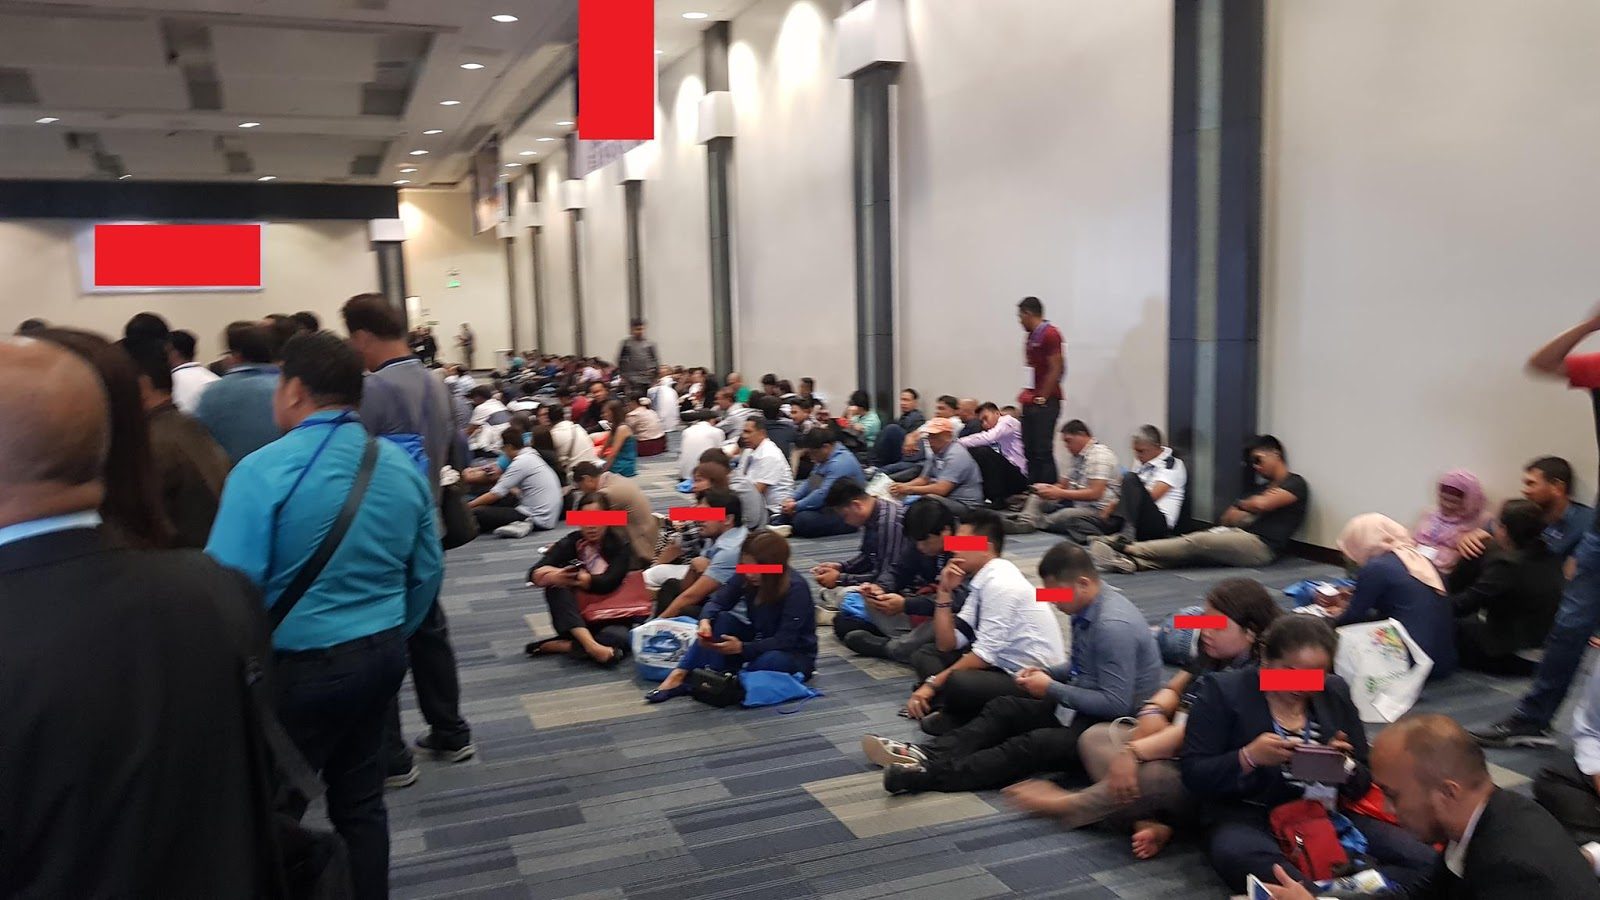 Engineer shares photo from alleged overpriced CPD seminar